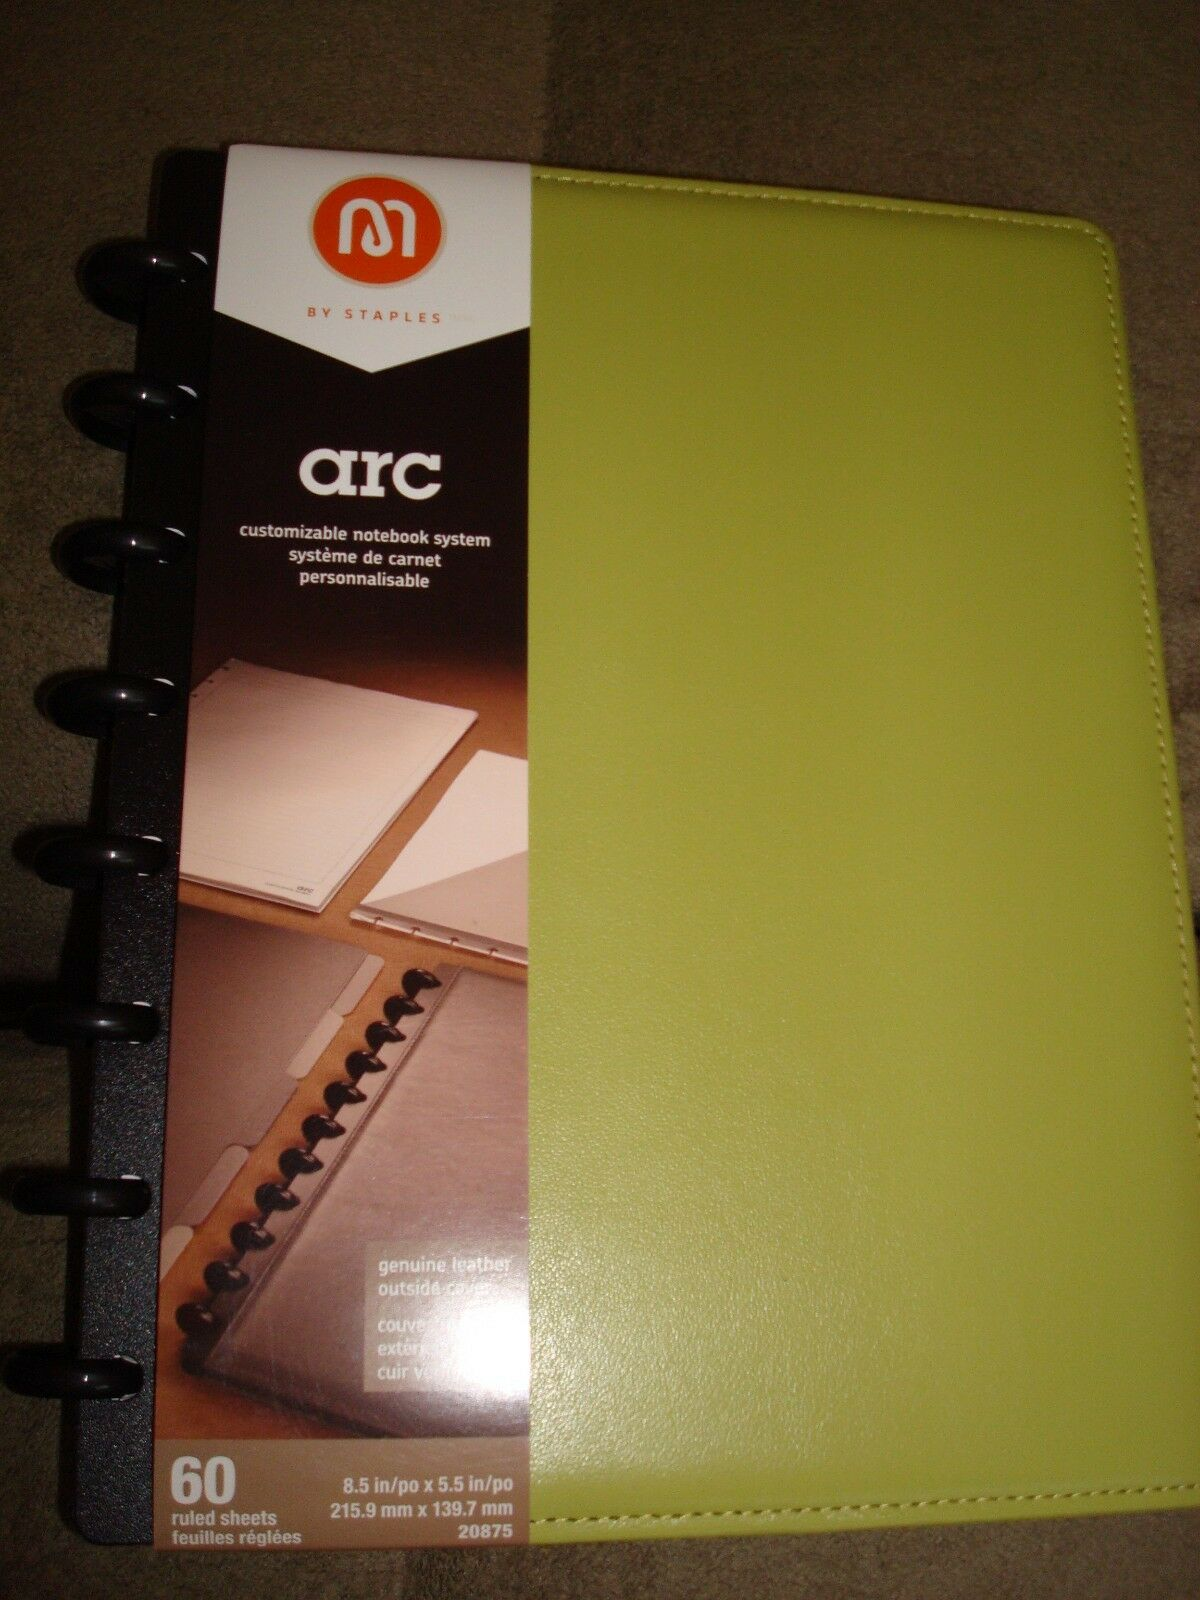 M BY STAPLES ARC CUSTOMIAZABLE NOTEBOOK SYSTEM 20875 LIGHT